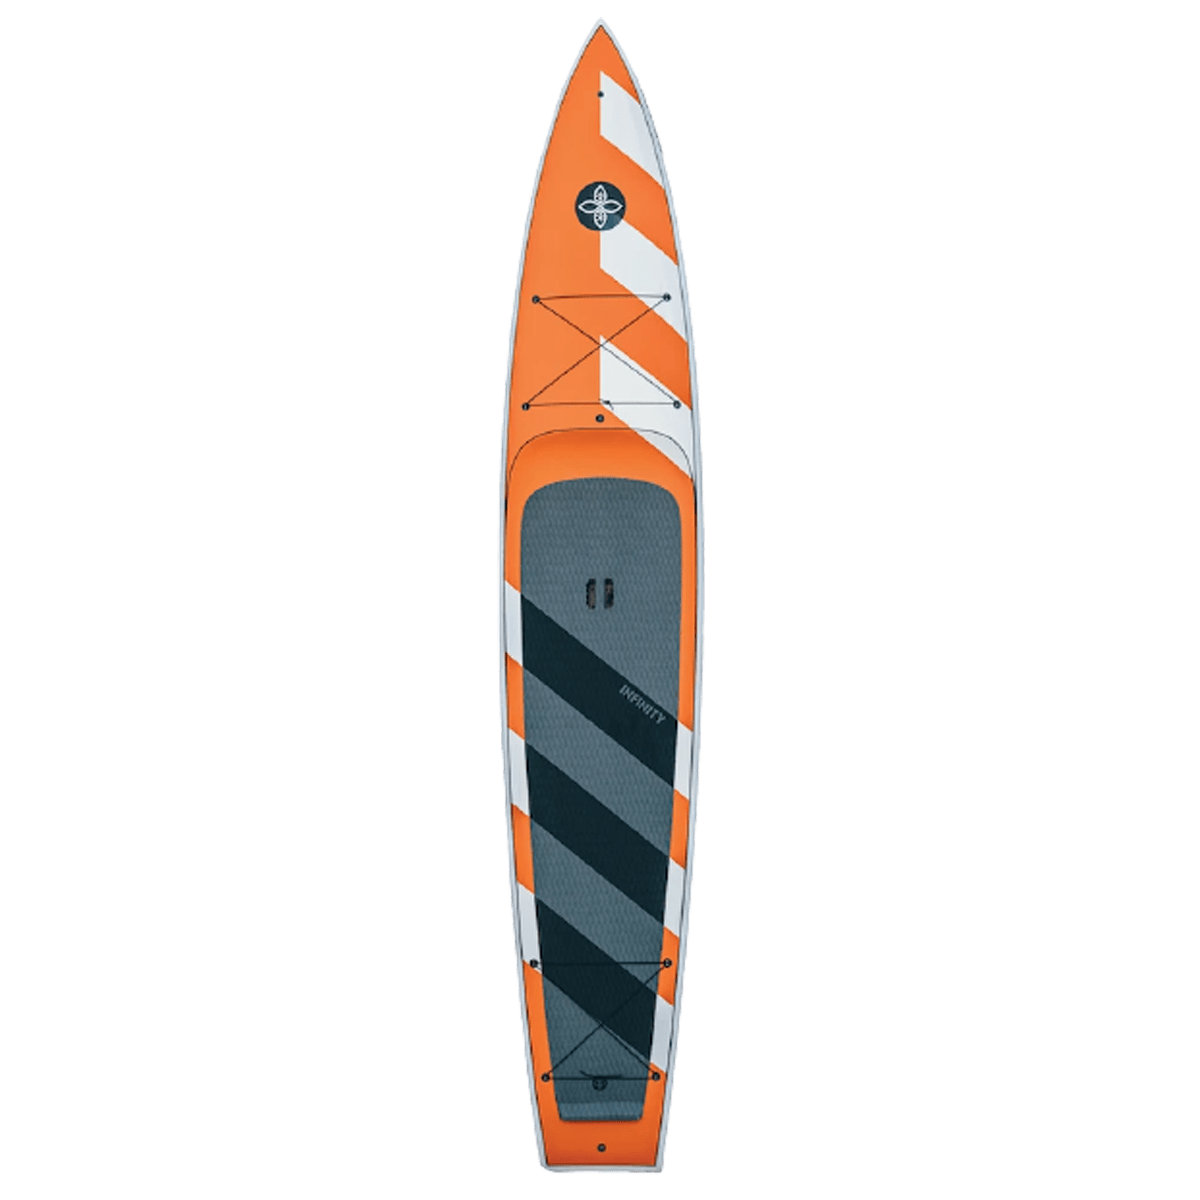 infinity SUP E-ticket Paddle Board Orange top deck